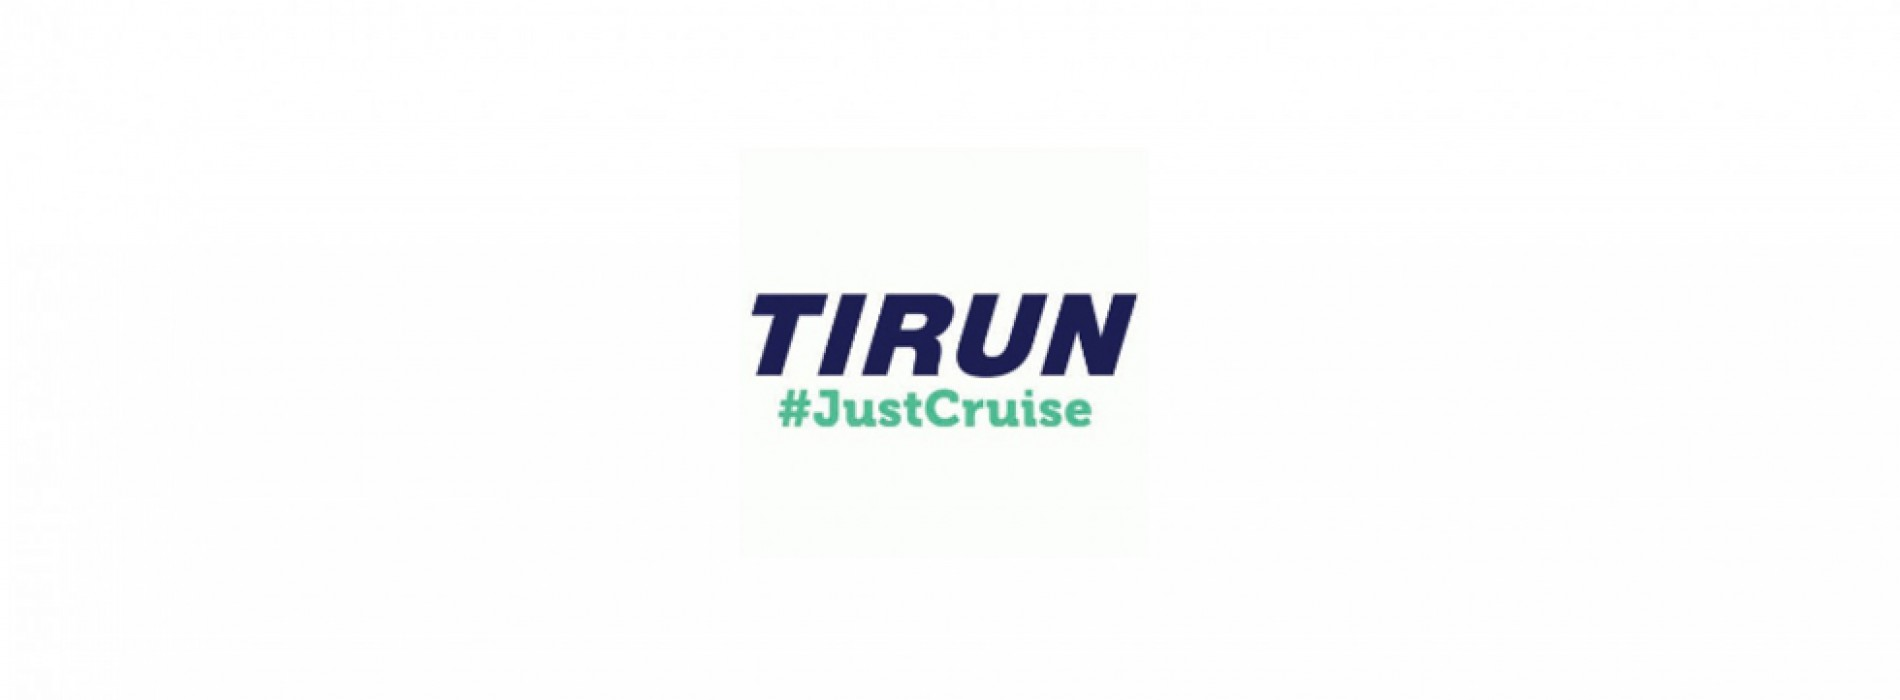 TIRUN partners with Singapore Airlines and Singapore Tourism Board to owning to increasing craze offers exciting prices for premium 'Fly Cruise' packages